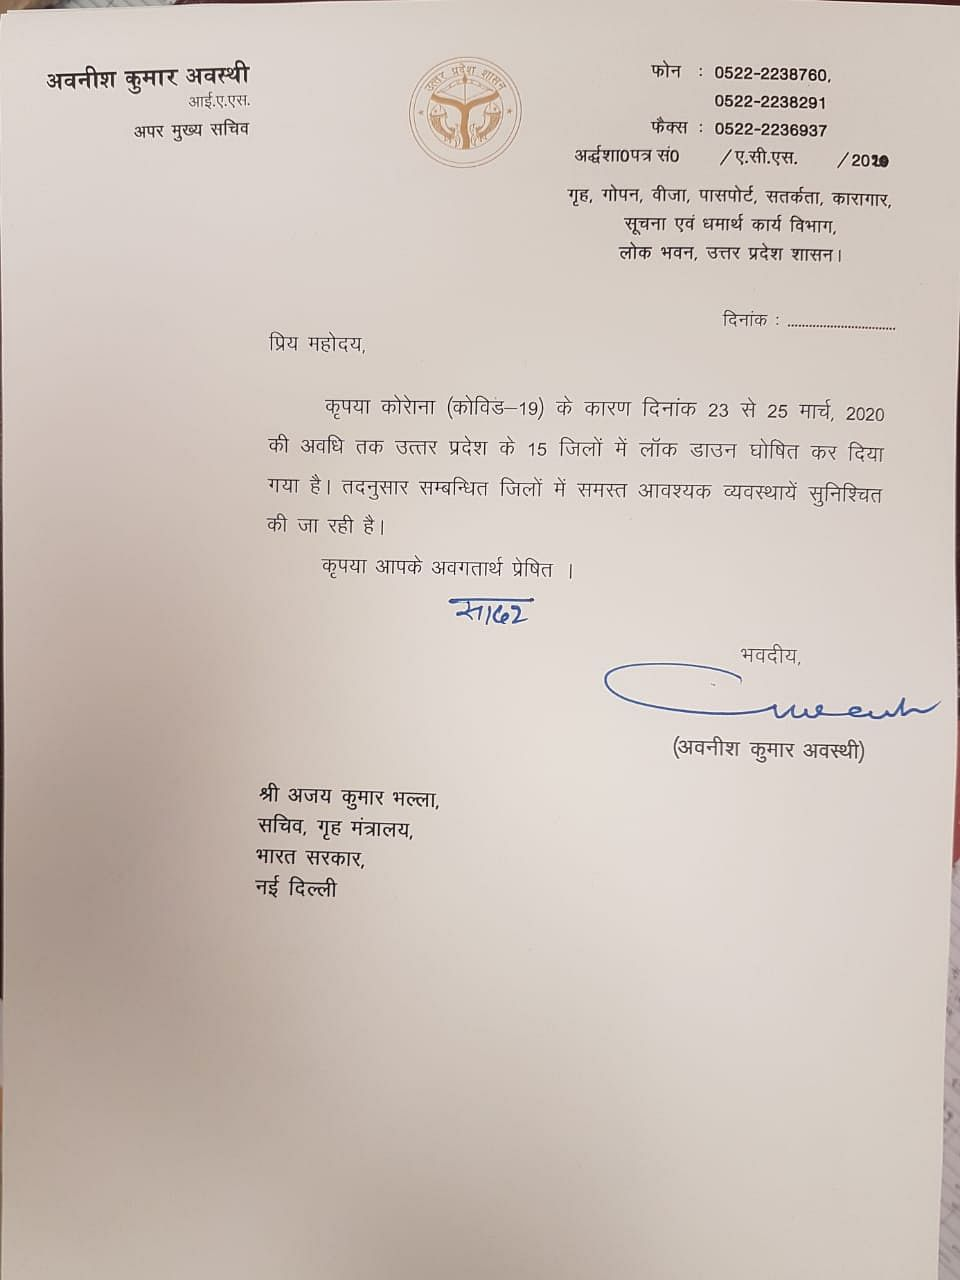 Image of the order given by UP government